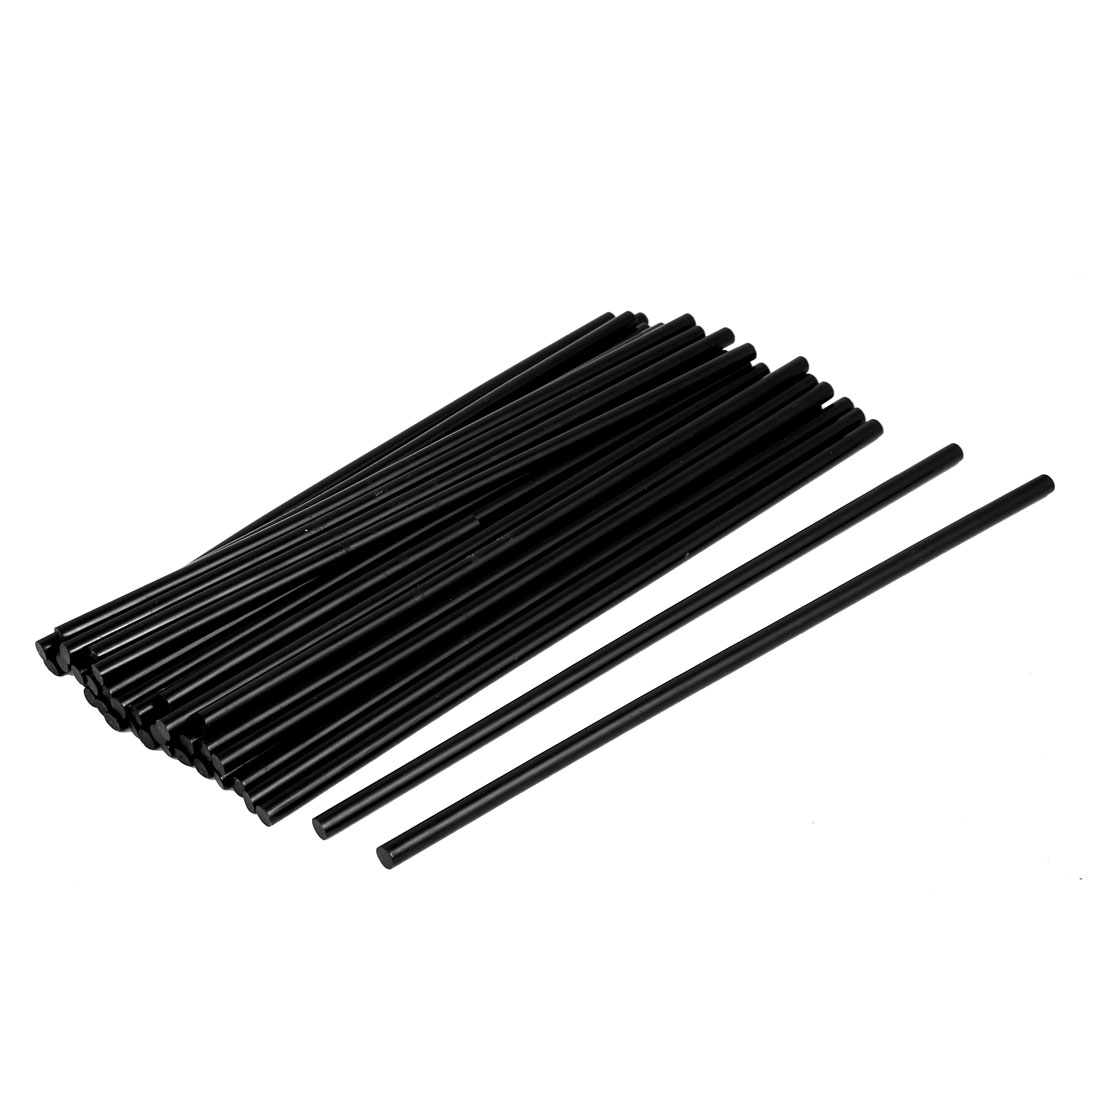 35 Pcs Environmental Glue Gun Sticks Hot Melt Translucency Black 7*270mm